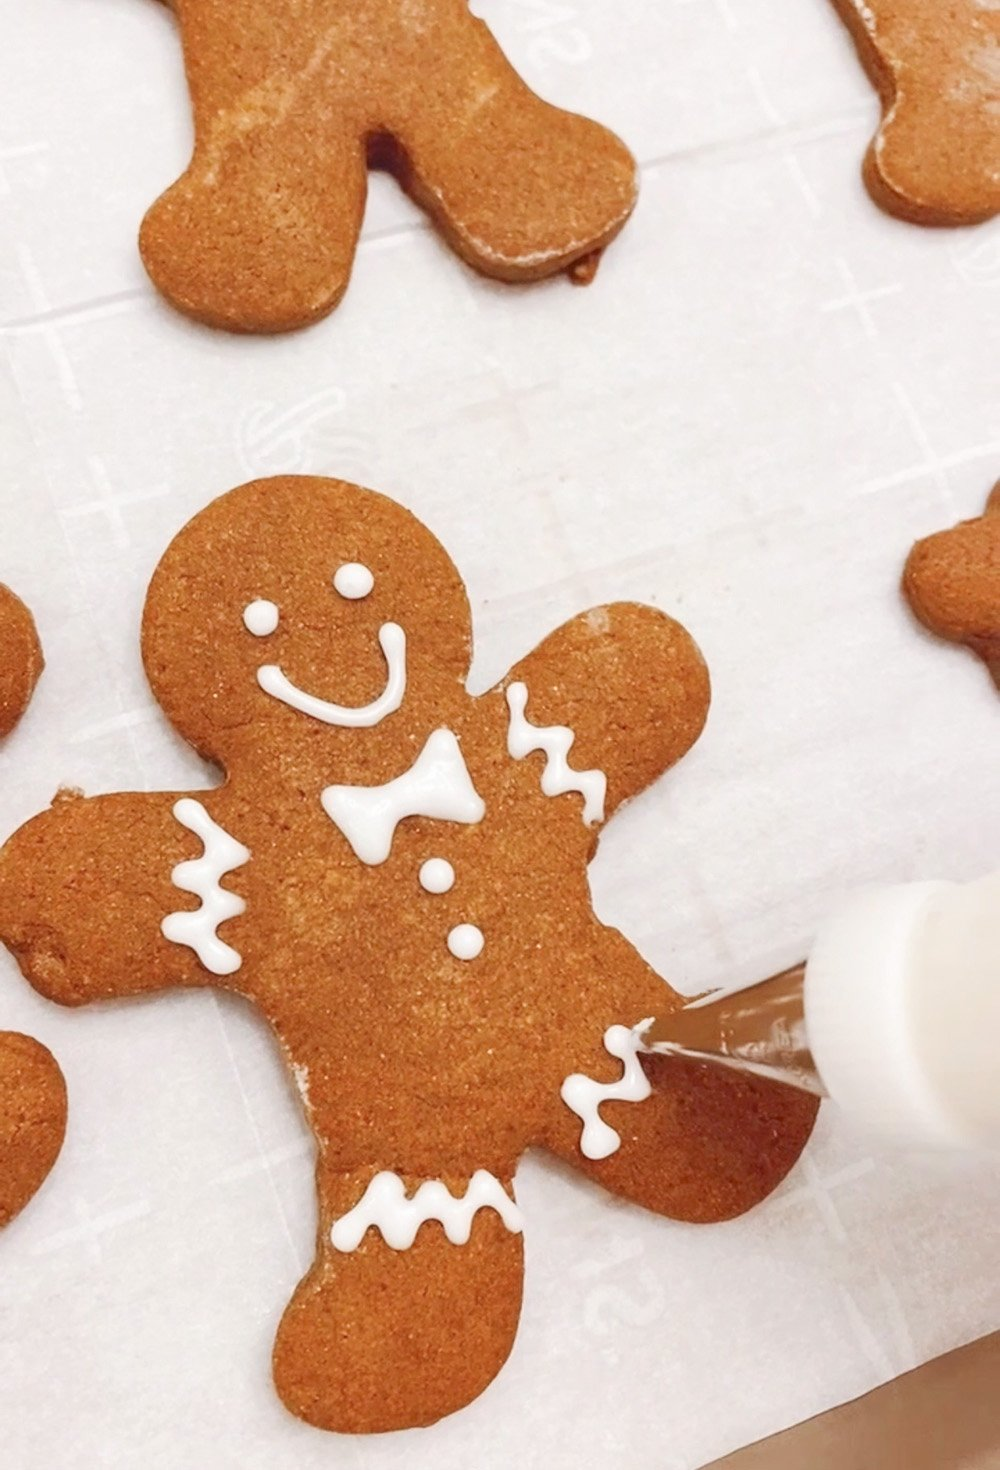 Icing a gingerbread cookie